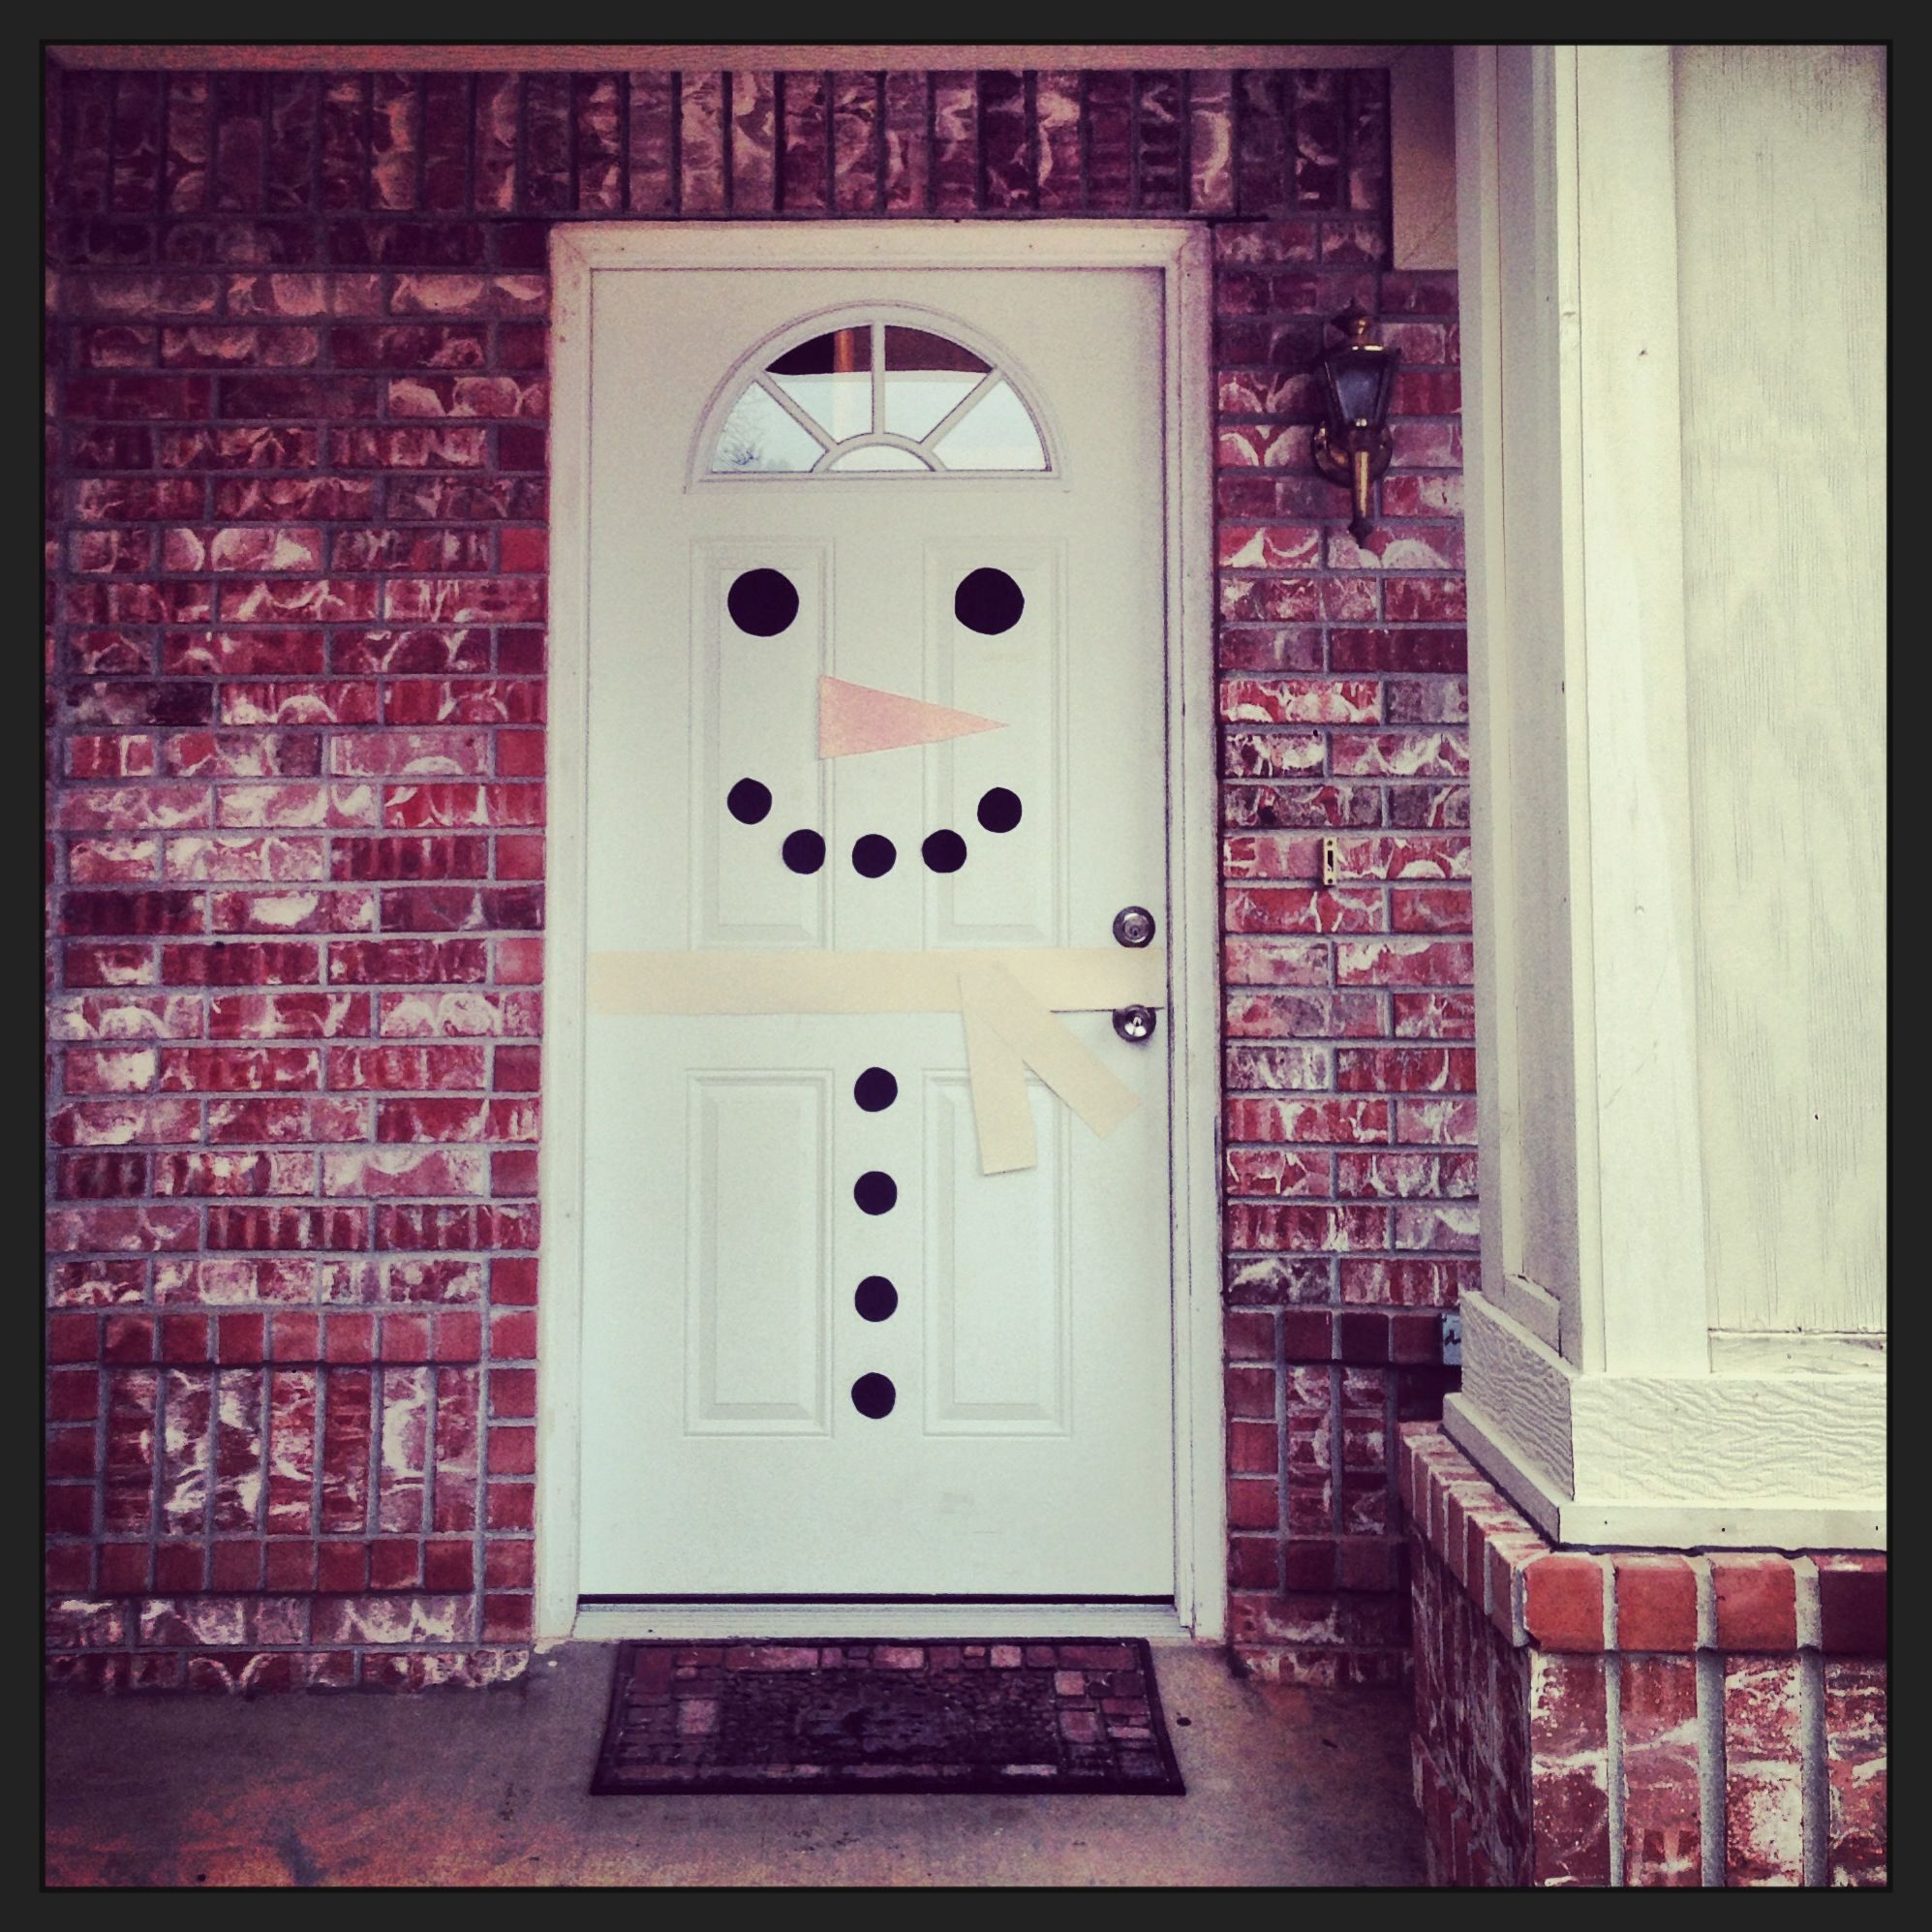 Pinterest Diy Deco Christmas Snowman Door Decoration Diy Christmas Pinterest